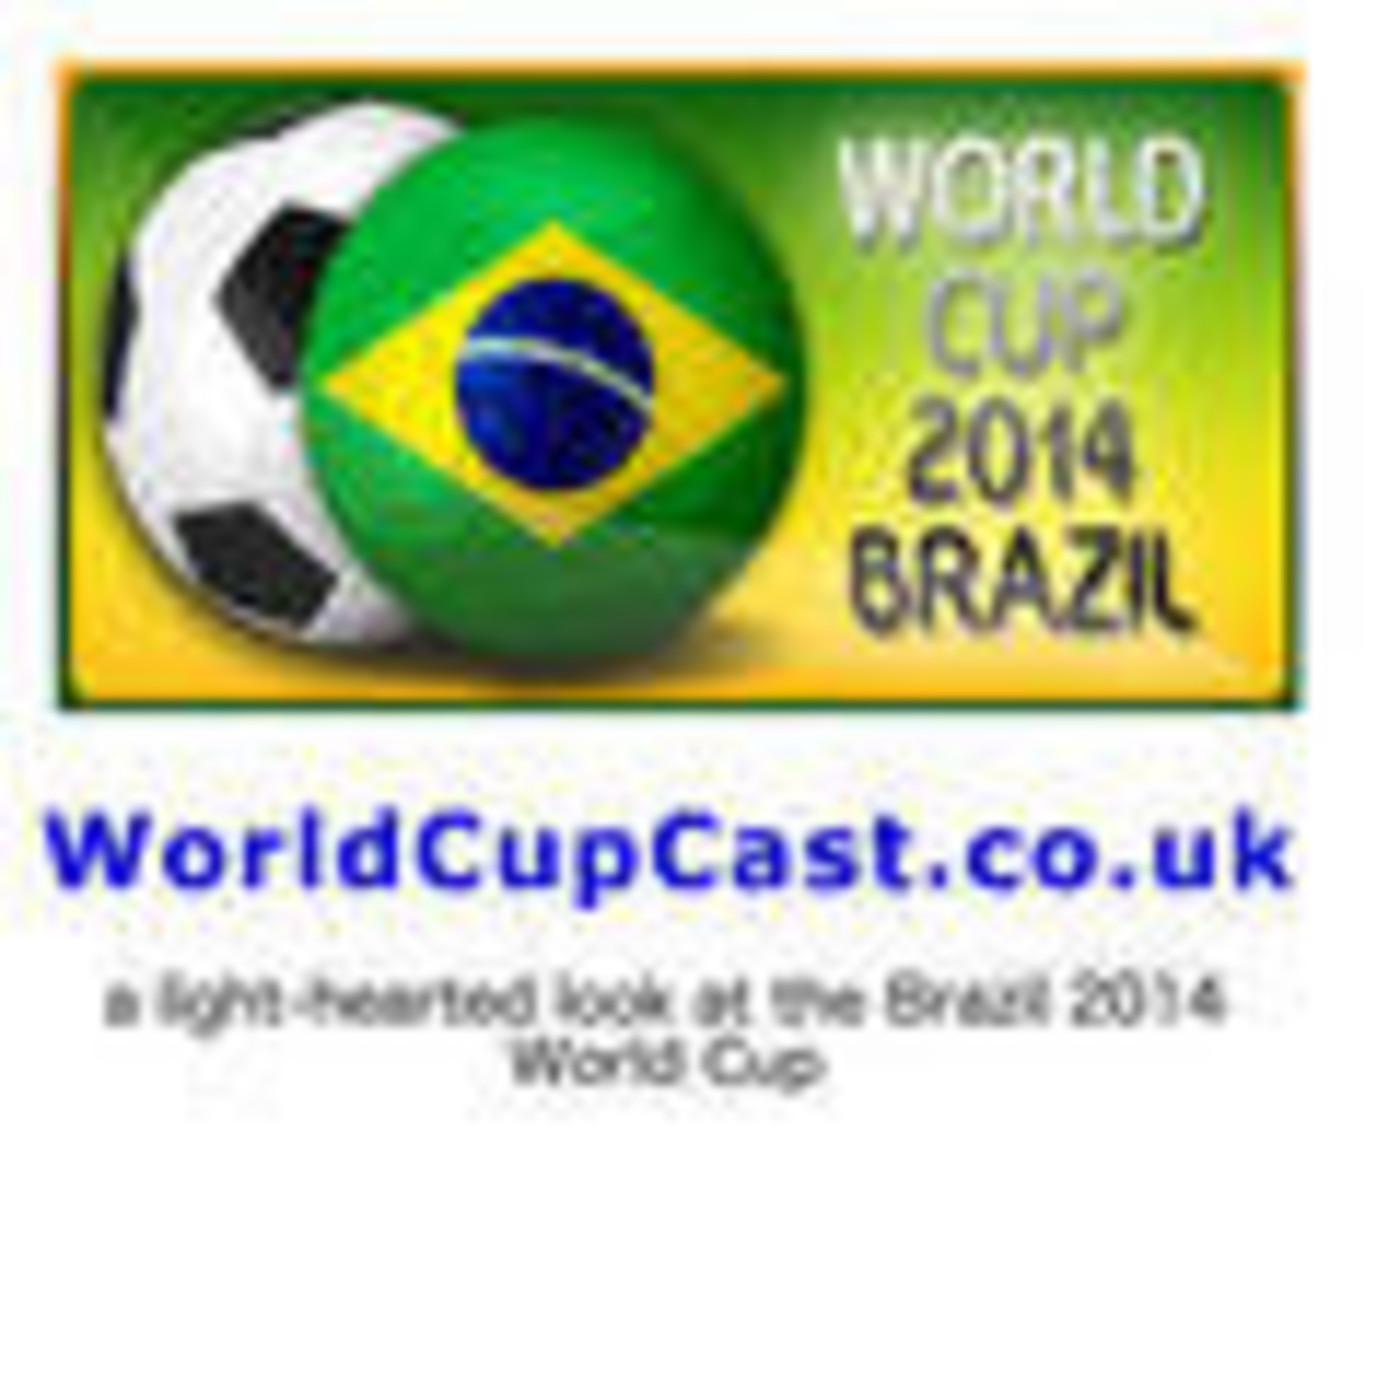 WorldCupCast.co.uk